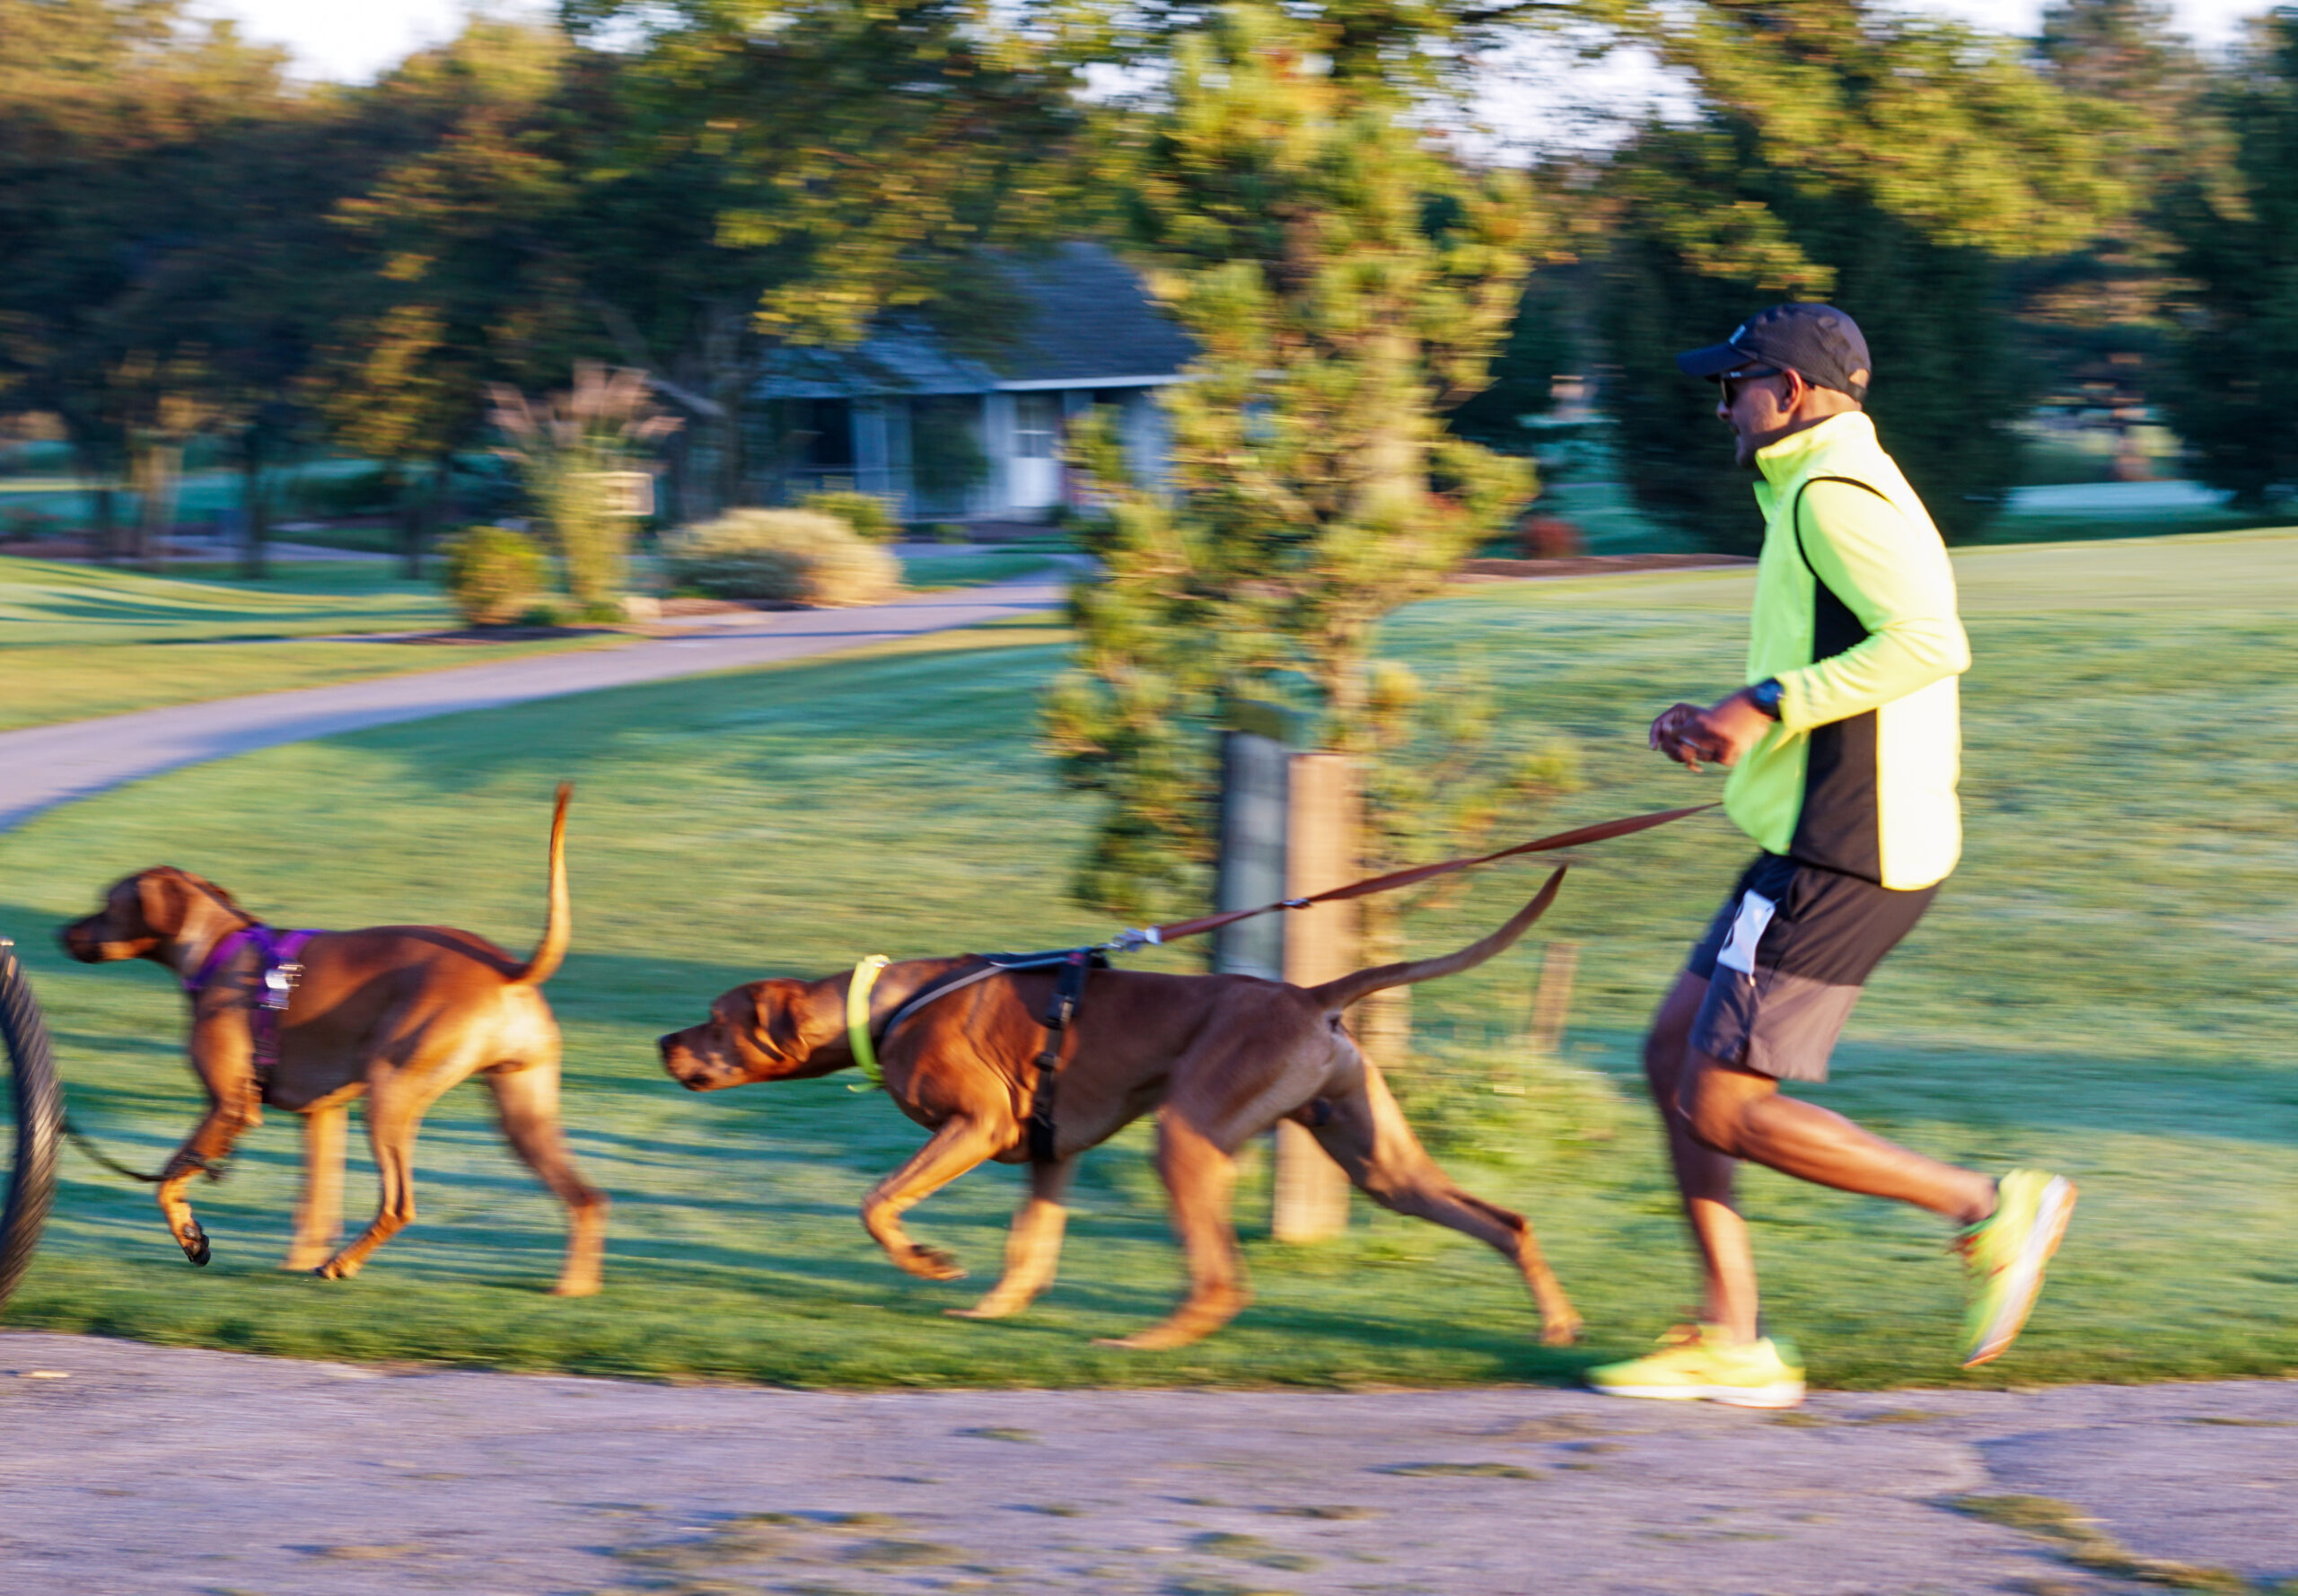 Colombo chasing another dog